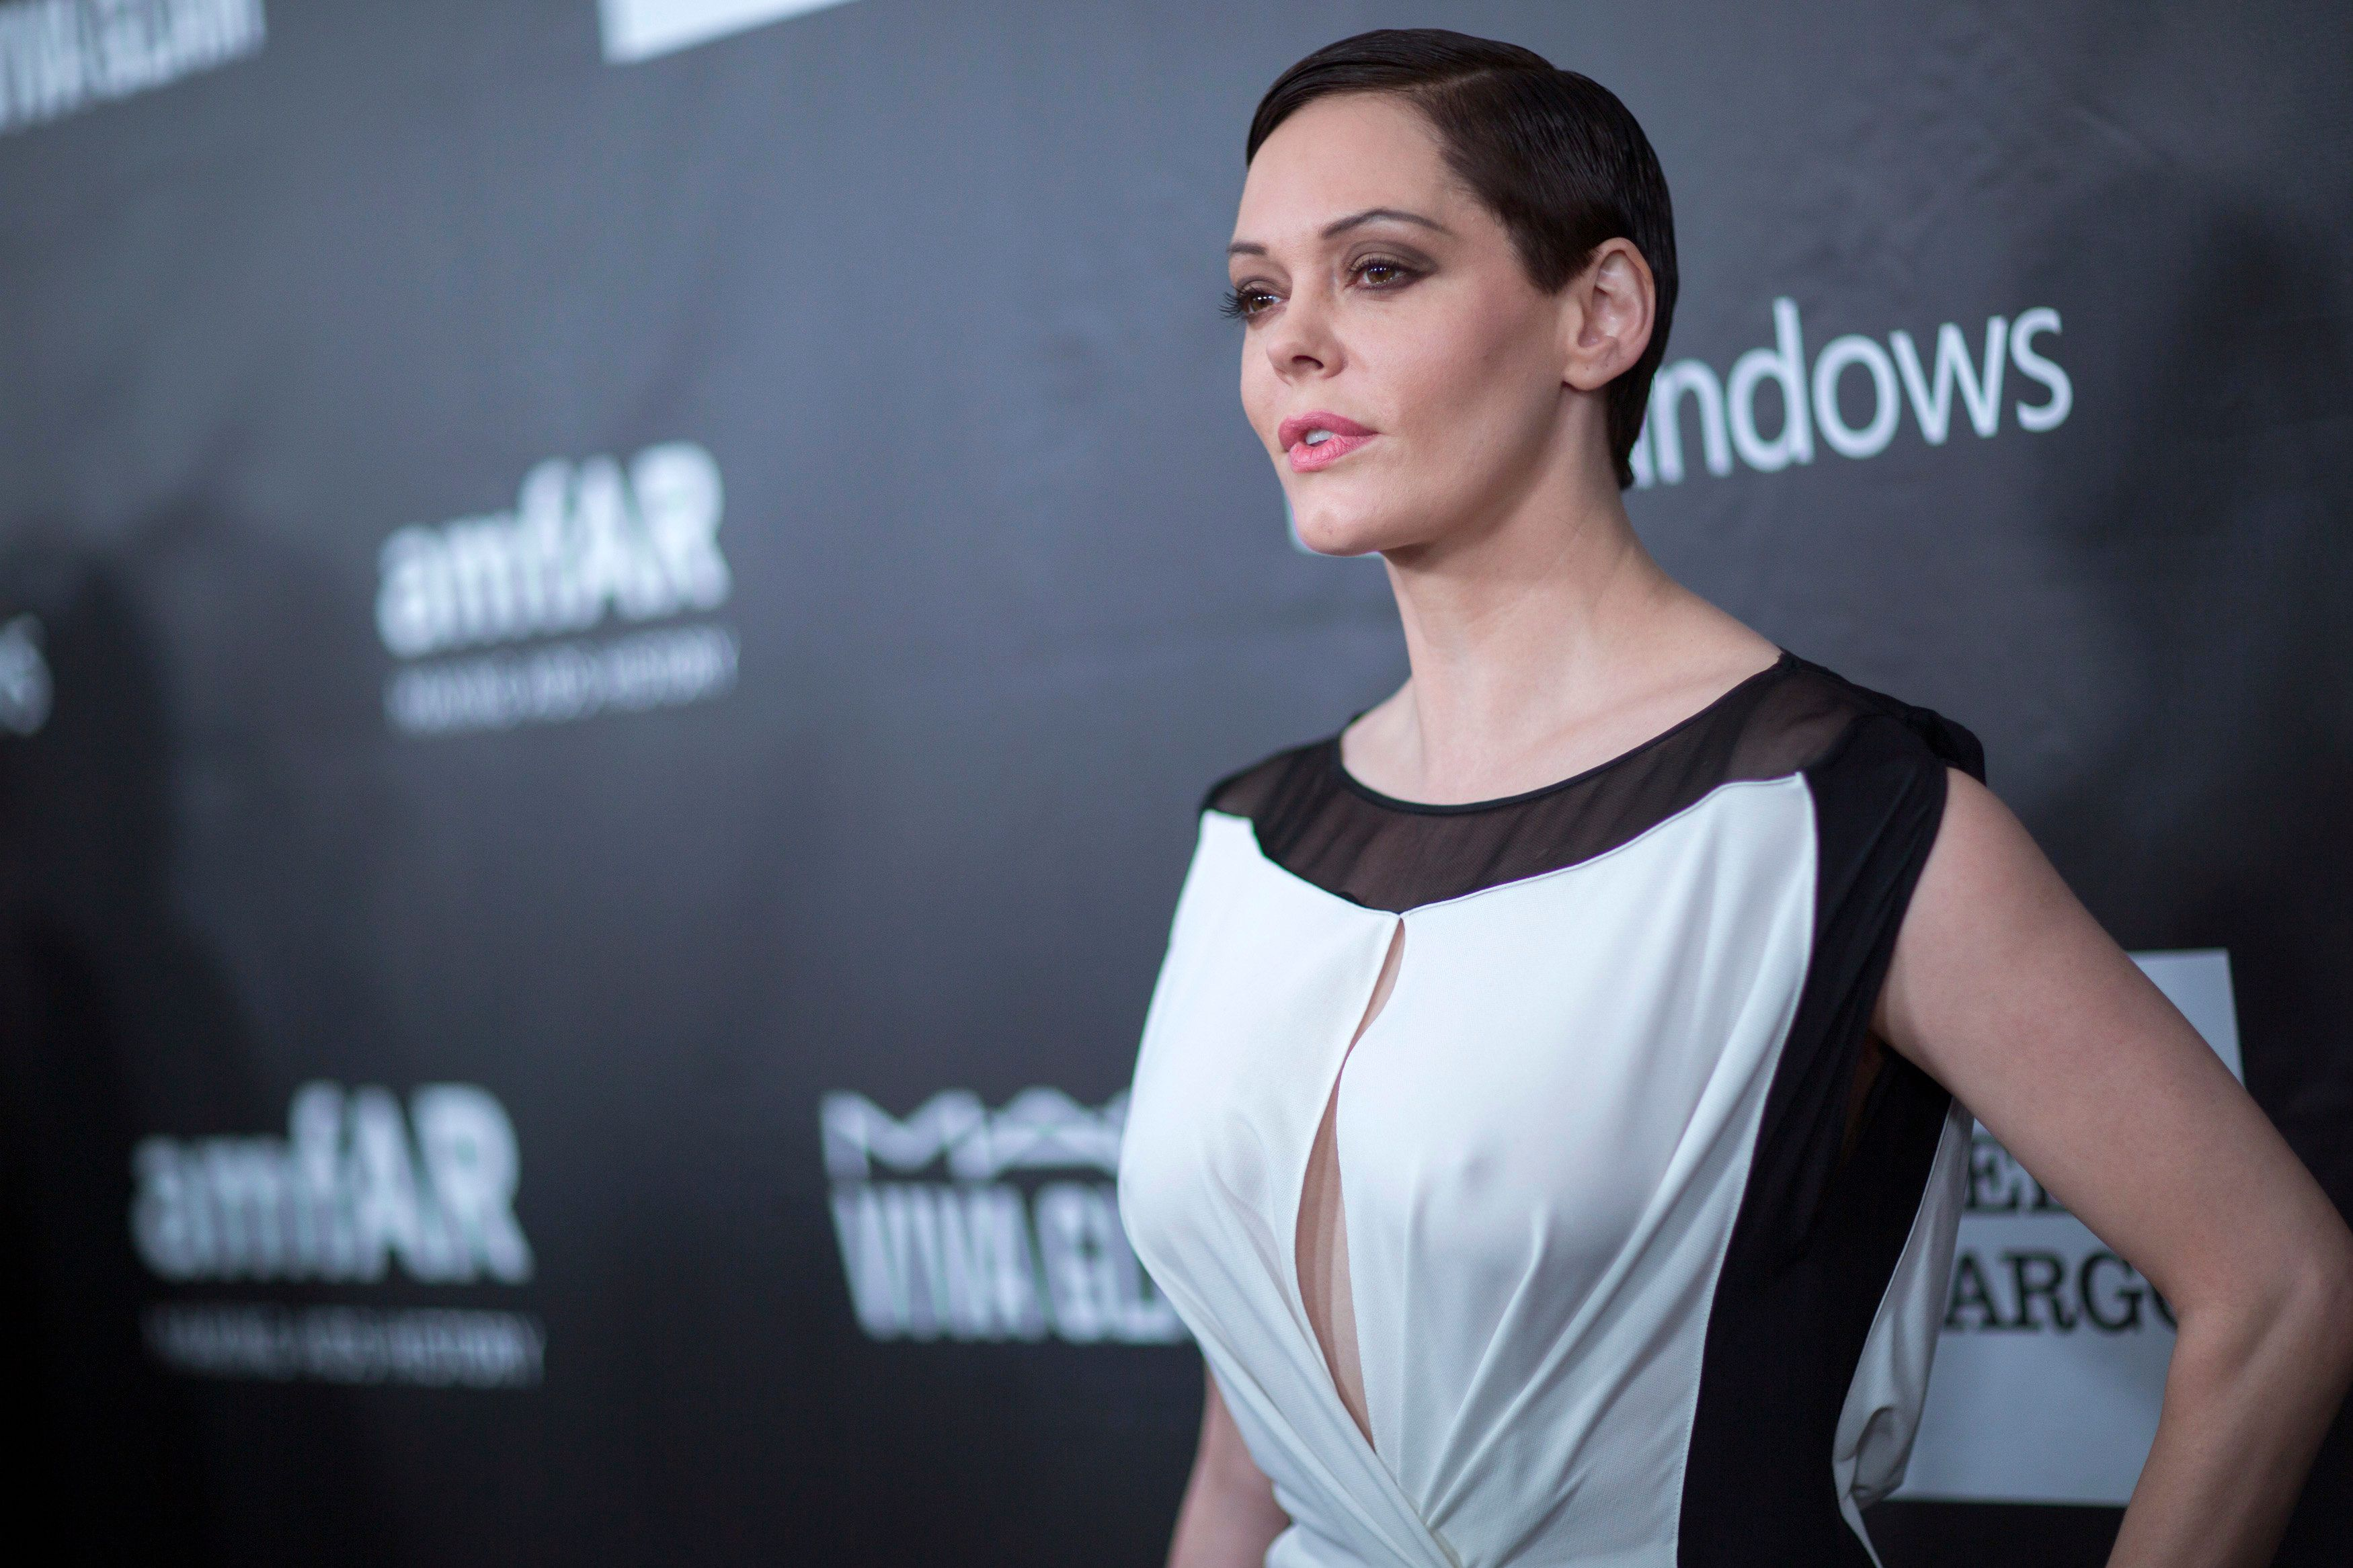 Rose McGowan's 'Twitter Suspended' Amid Harvey Weinstein Sexual Assault Allegations